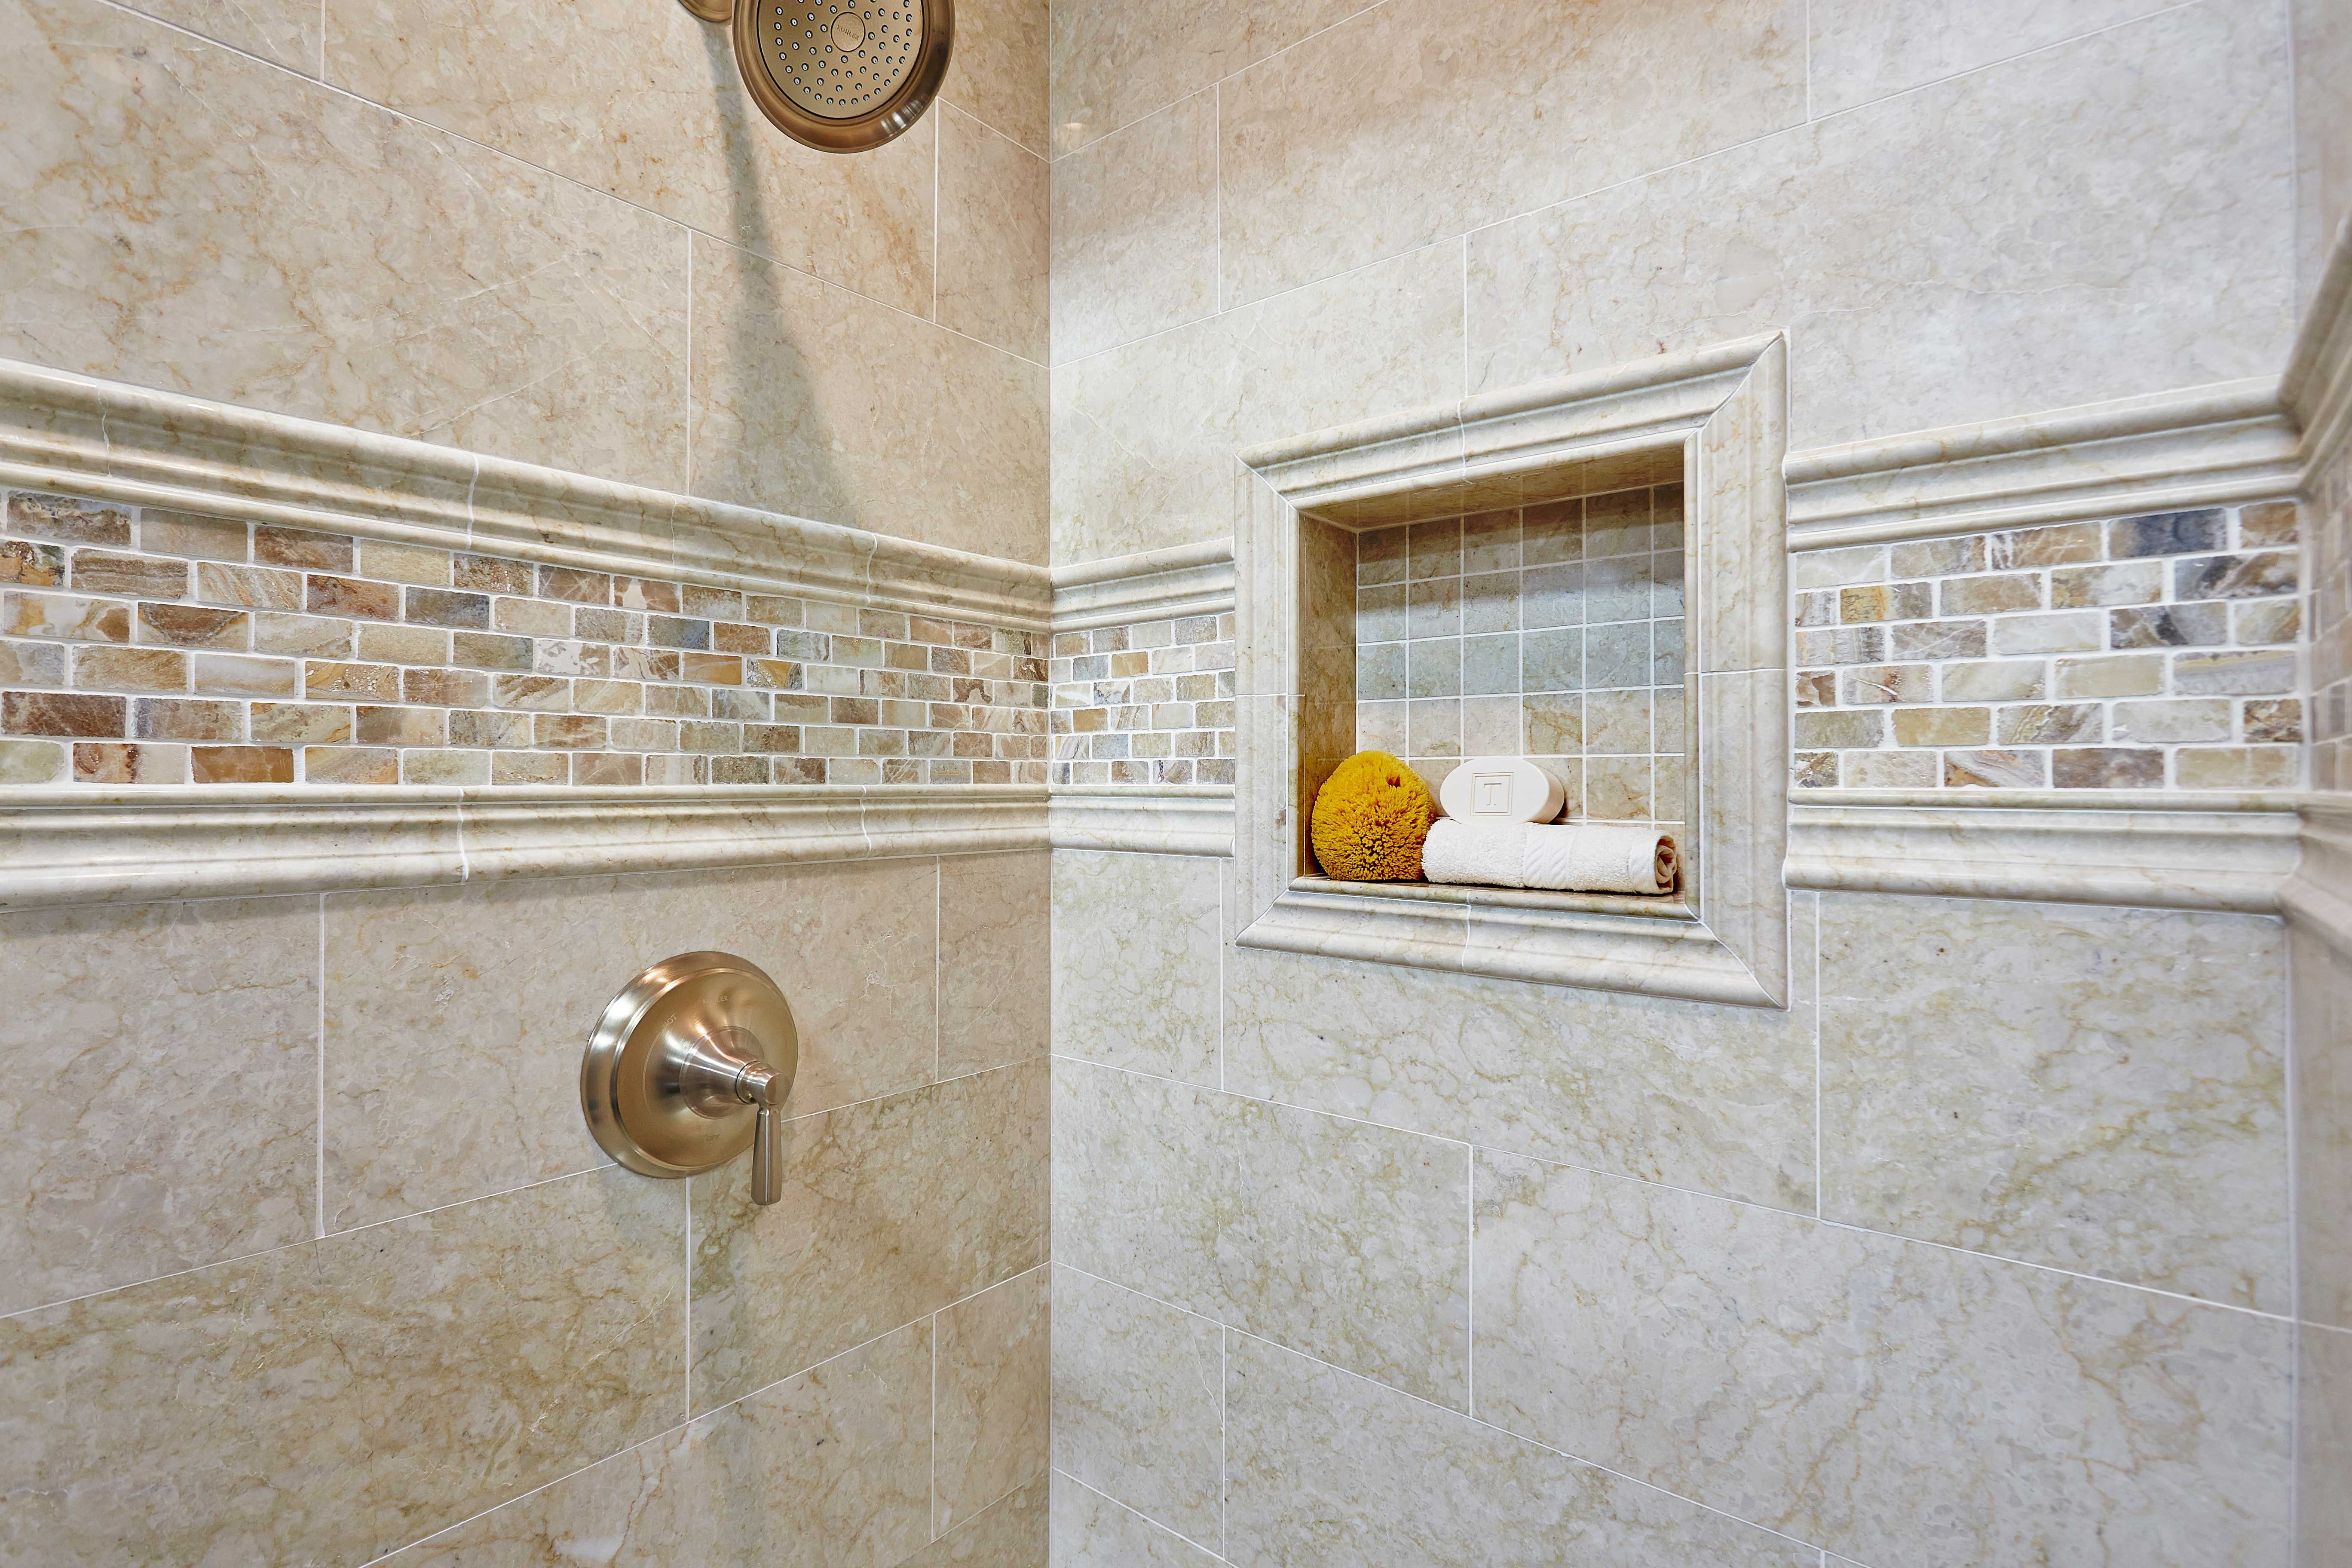 Bathroom shower accent tile - Teraporto Listello Travertine Mosaic ...